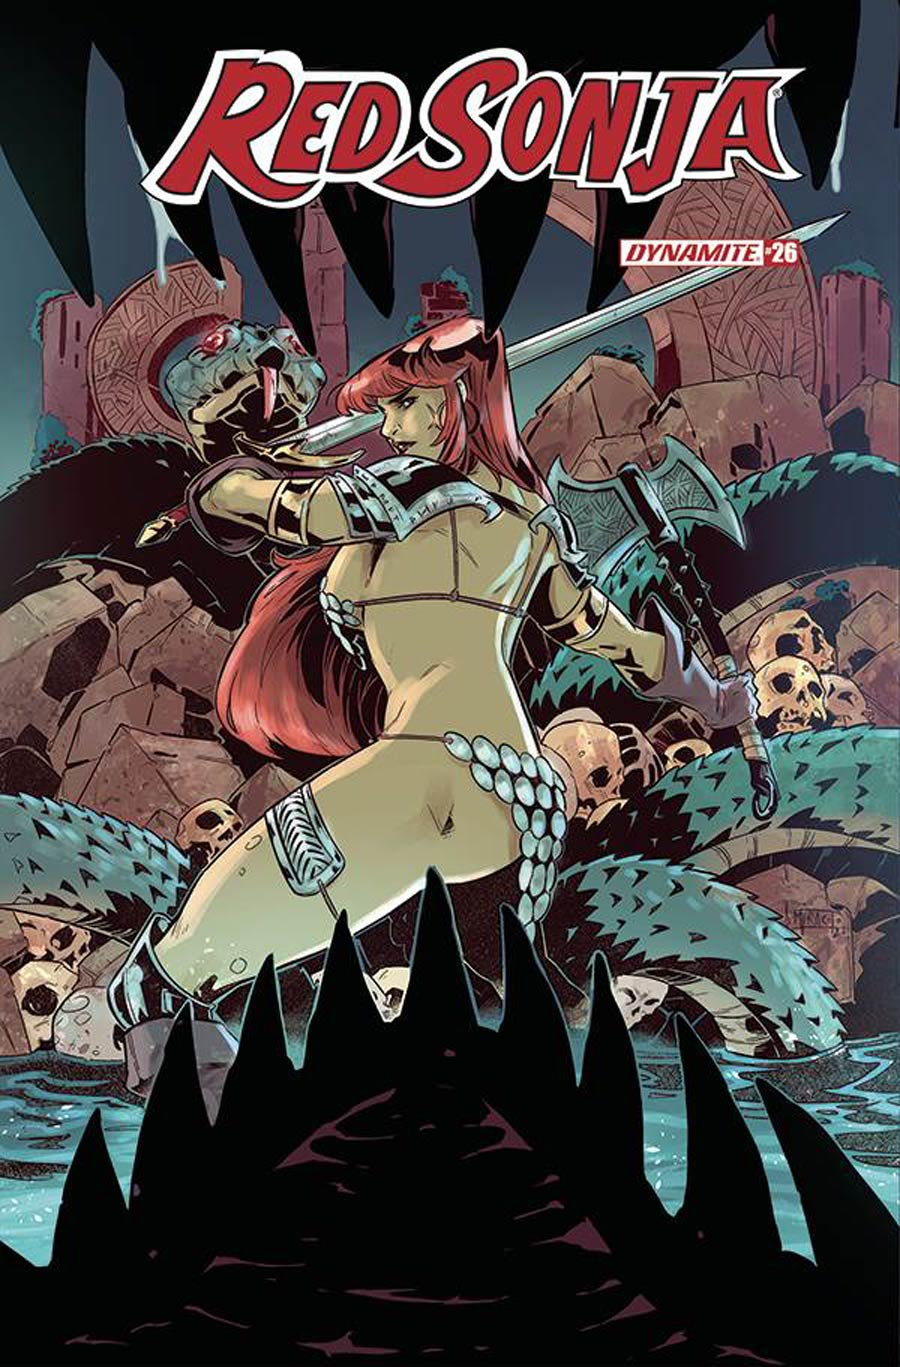 Red Sonja Vol 8 #26 Cover D Variant Alessandro Miracolo Cover